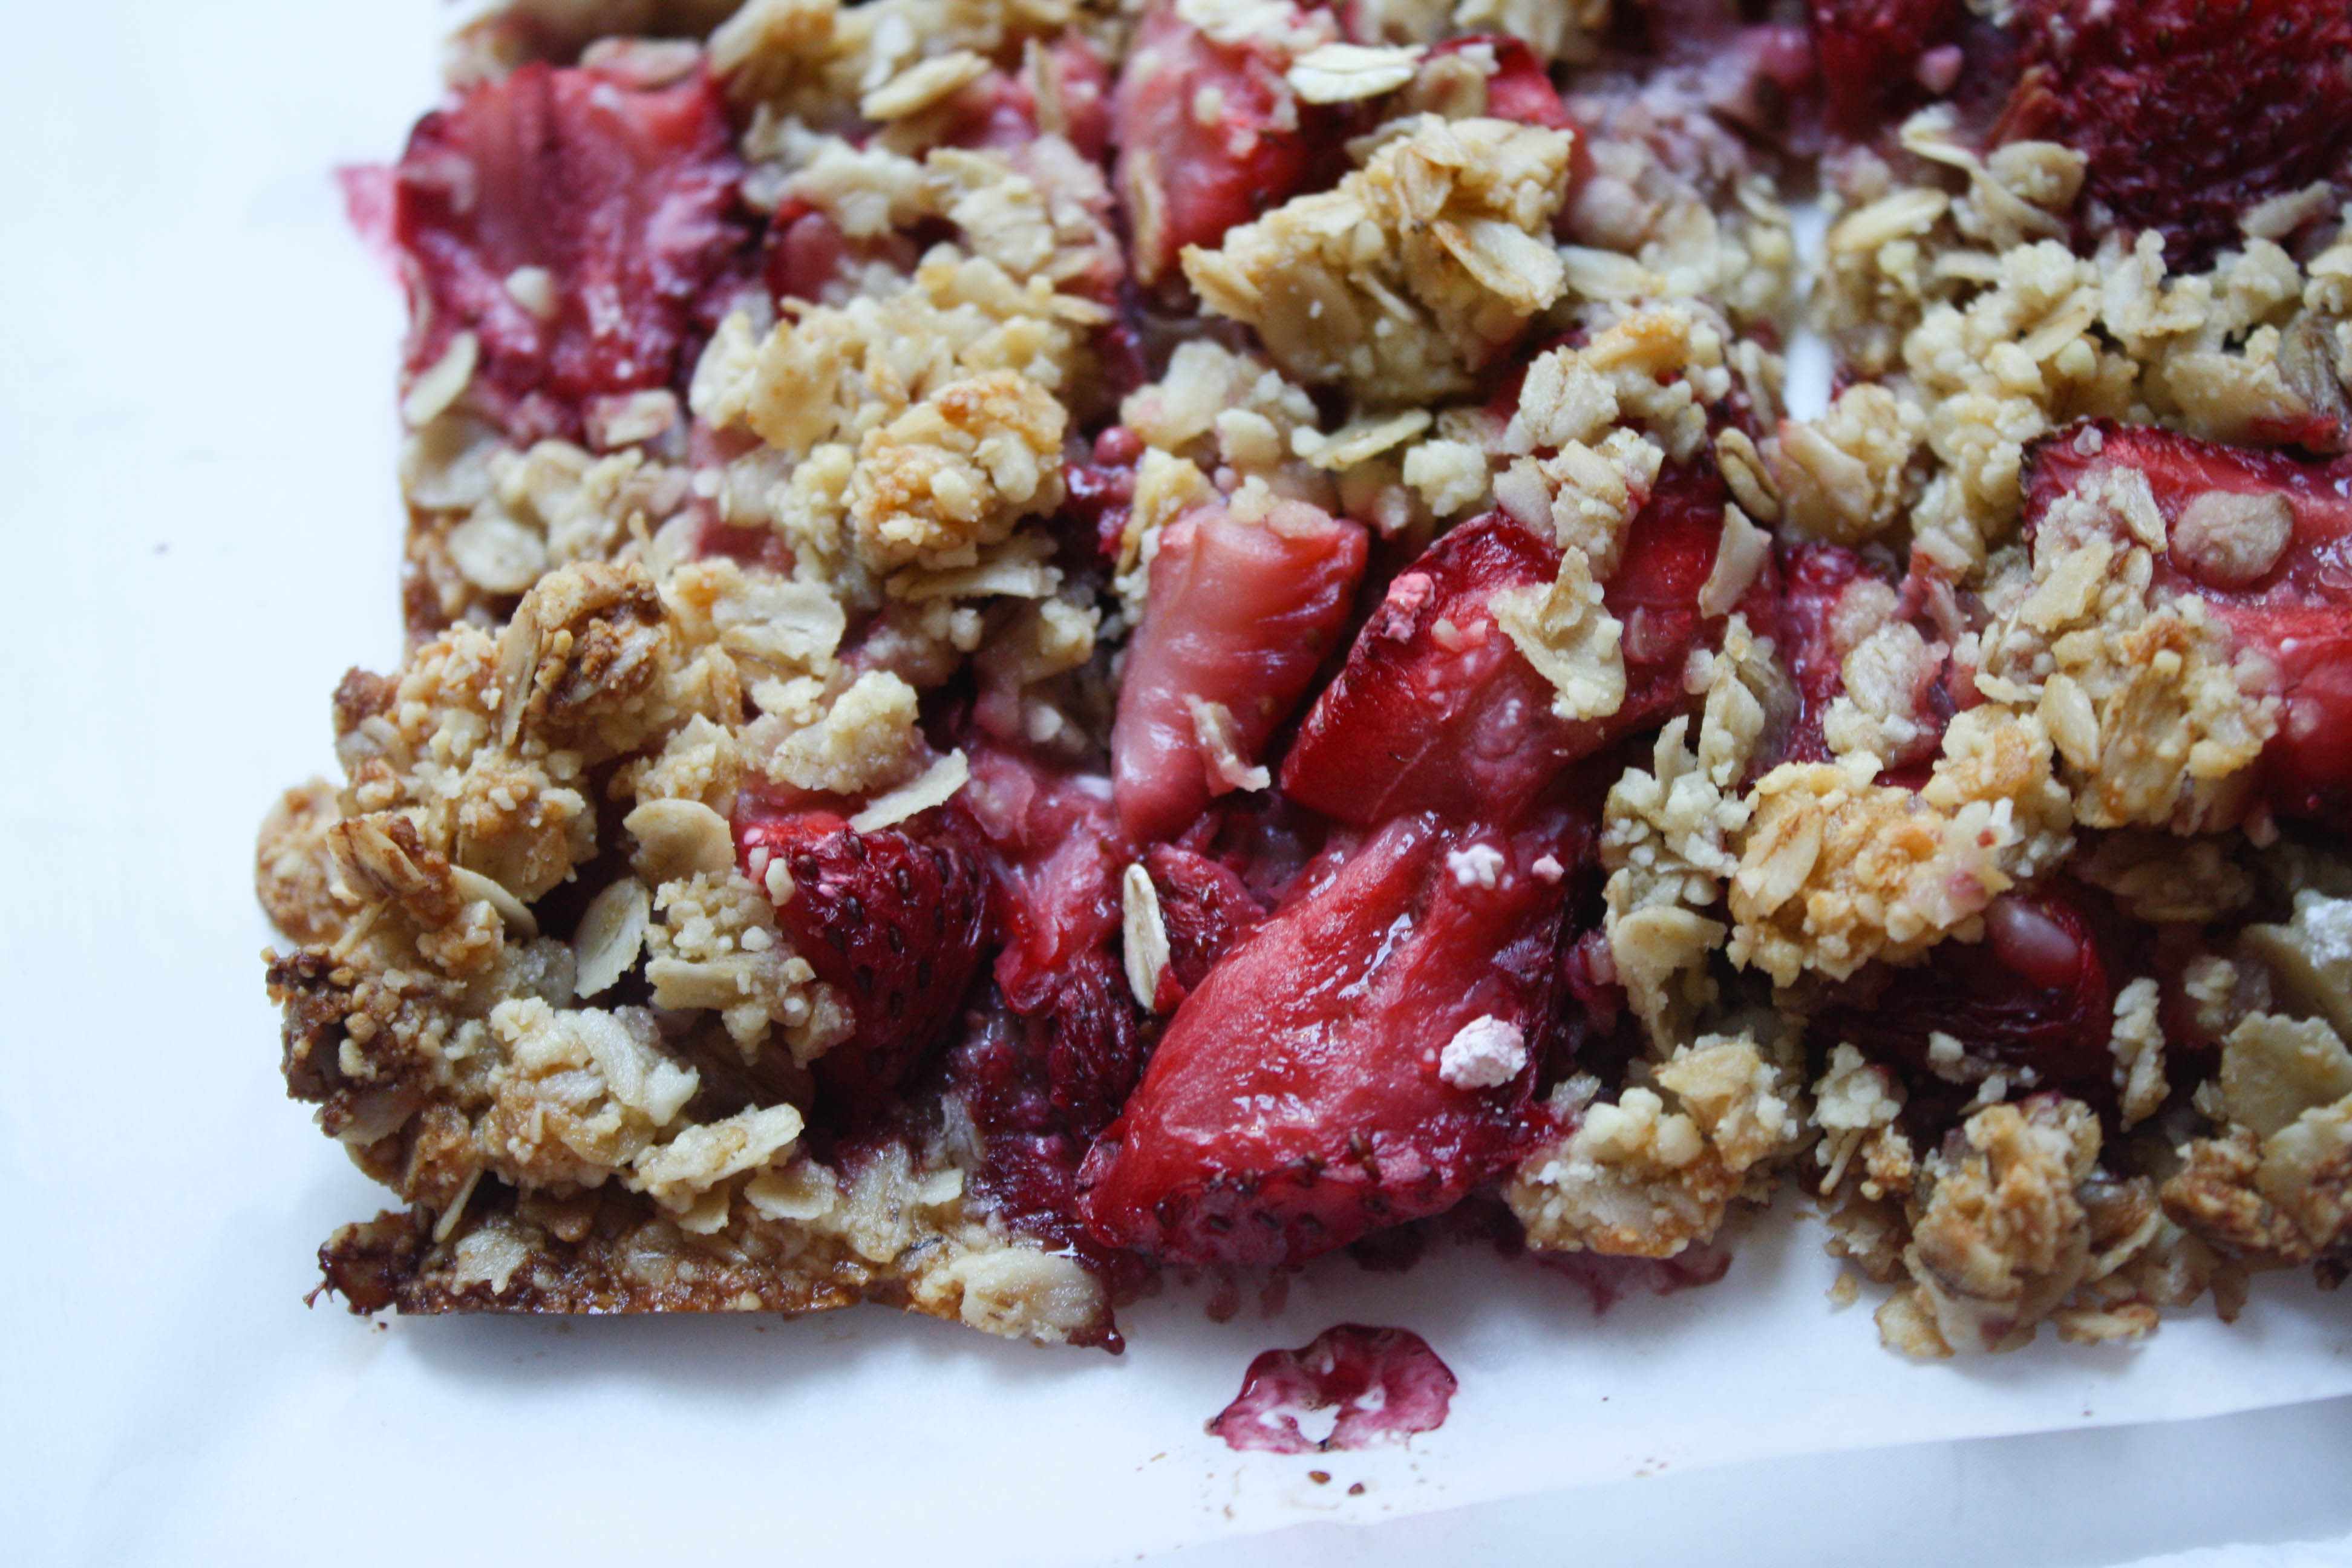 You've got to try this sweet but healthy snack! These Strawberry Oat Bars are made with real fruit and sweetened with honey for a yummy, sugar free snack.